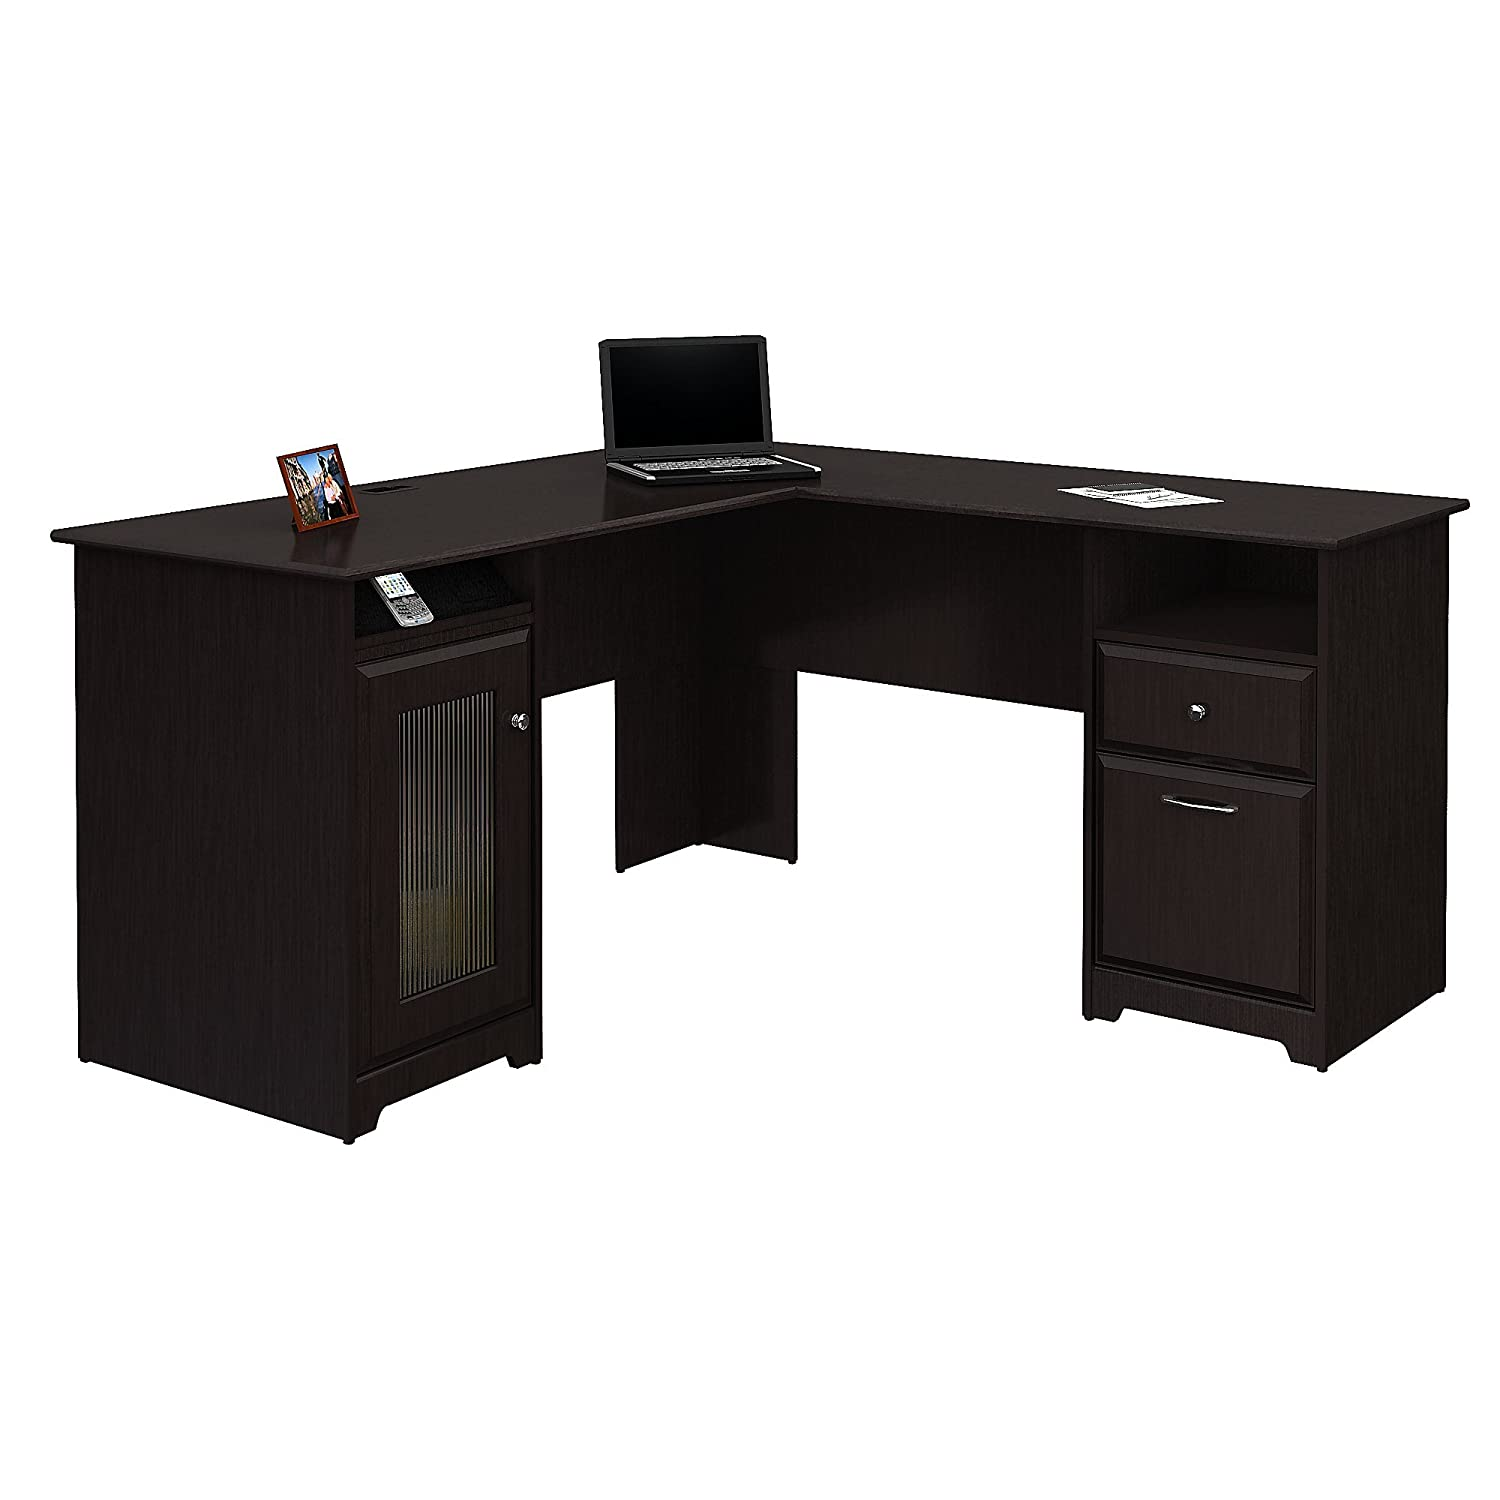 drawers leg wheels drawer printer computer office ideas furniture and storage desk black home painted design steel with